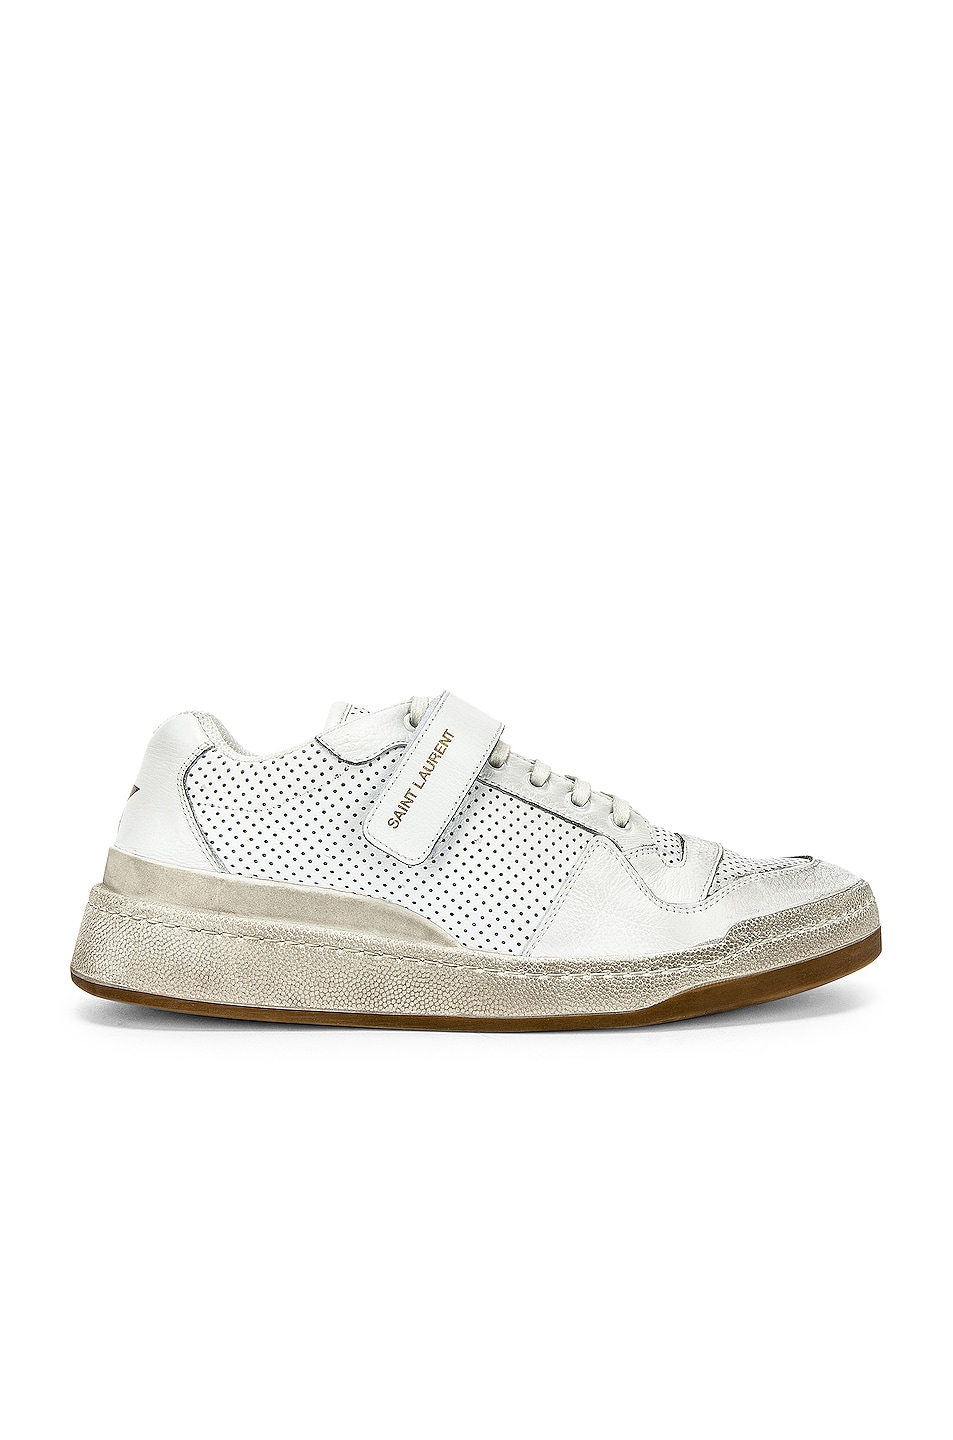 Image 1 of Saint Laurent Jeddo Low Tops in White